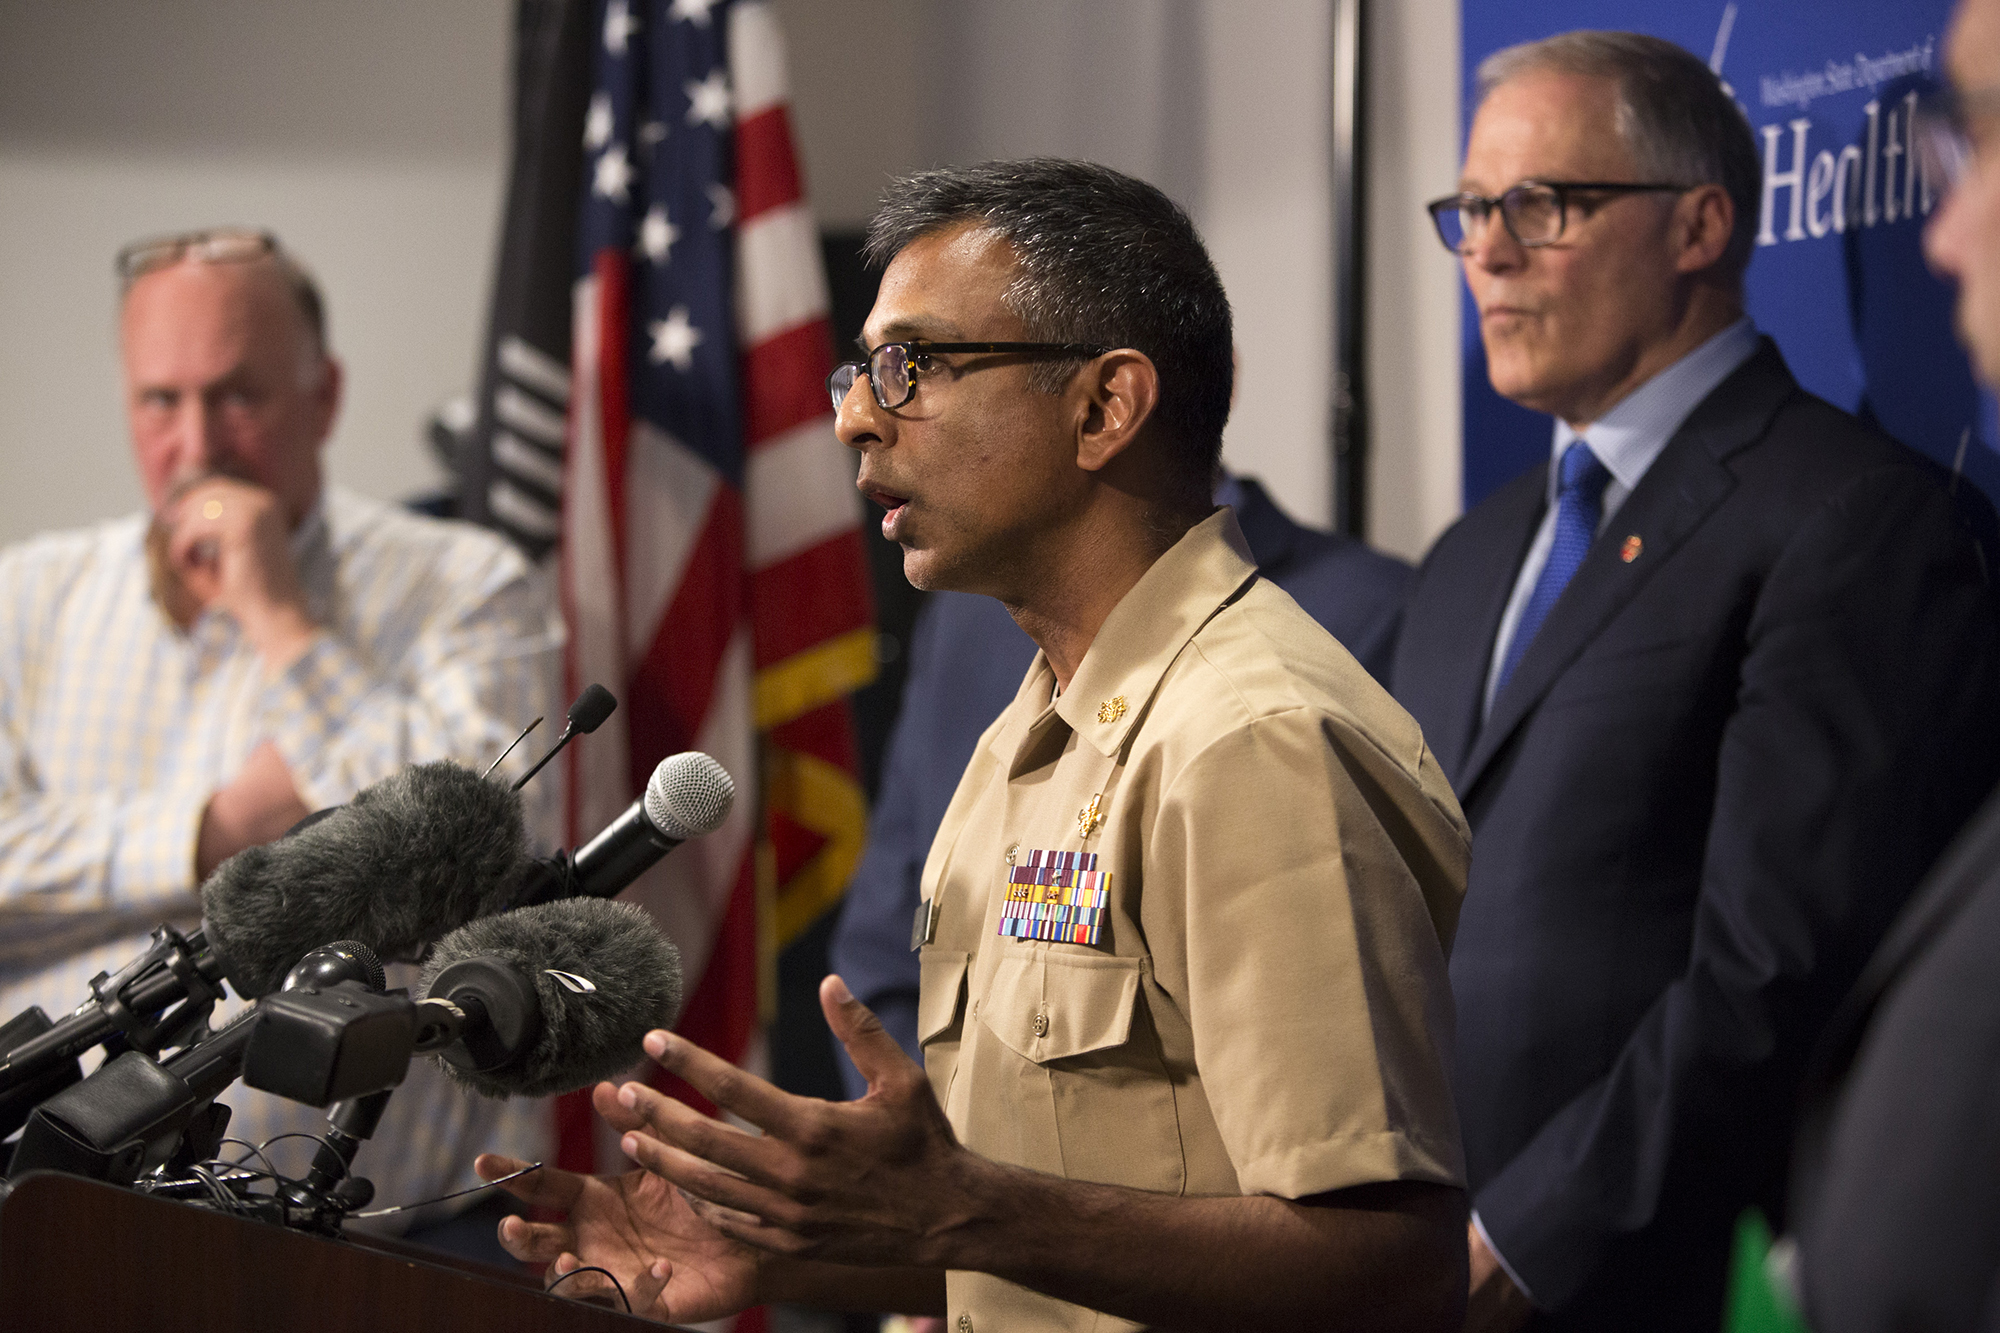 Satish Pillai, Medical Officer in the Division of Preparedness and Emerging Infections at the Centers for Disease Control and Prevention, talks during a press conference in Shoreline, Washington on Tuesday, January 21.